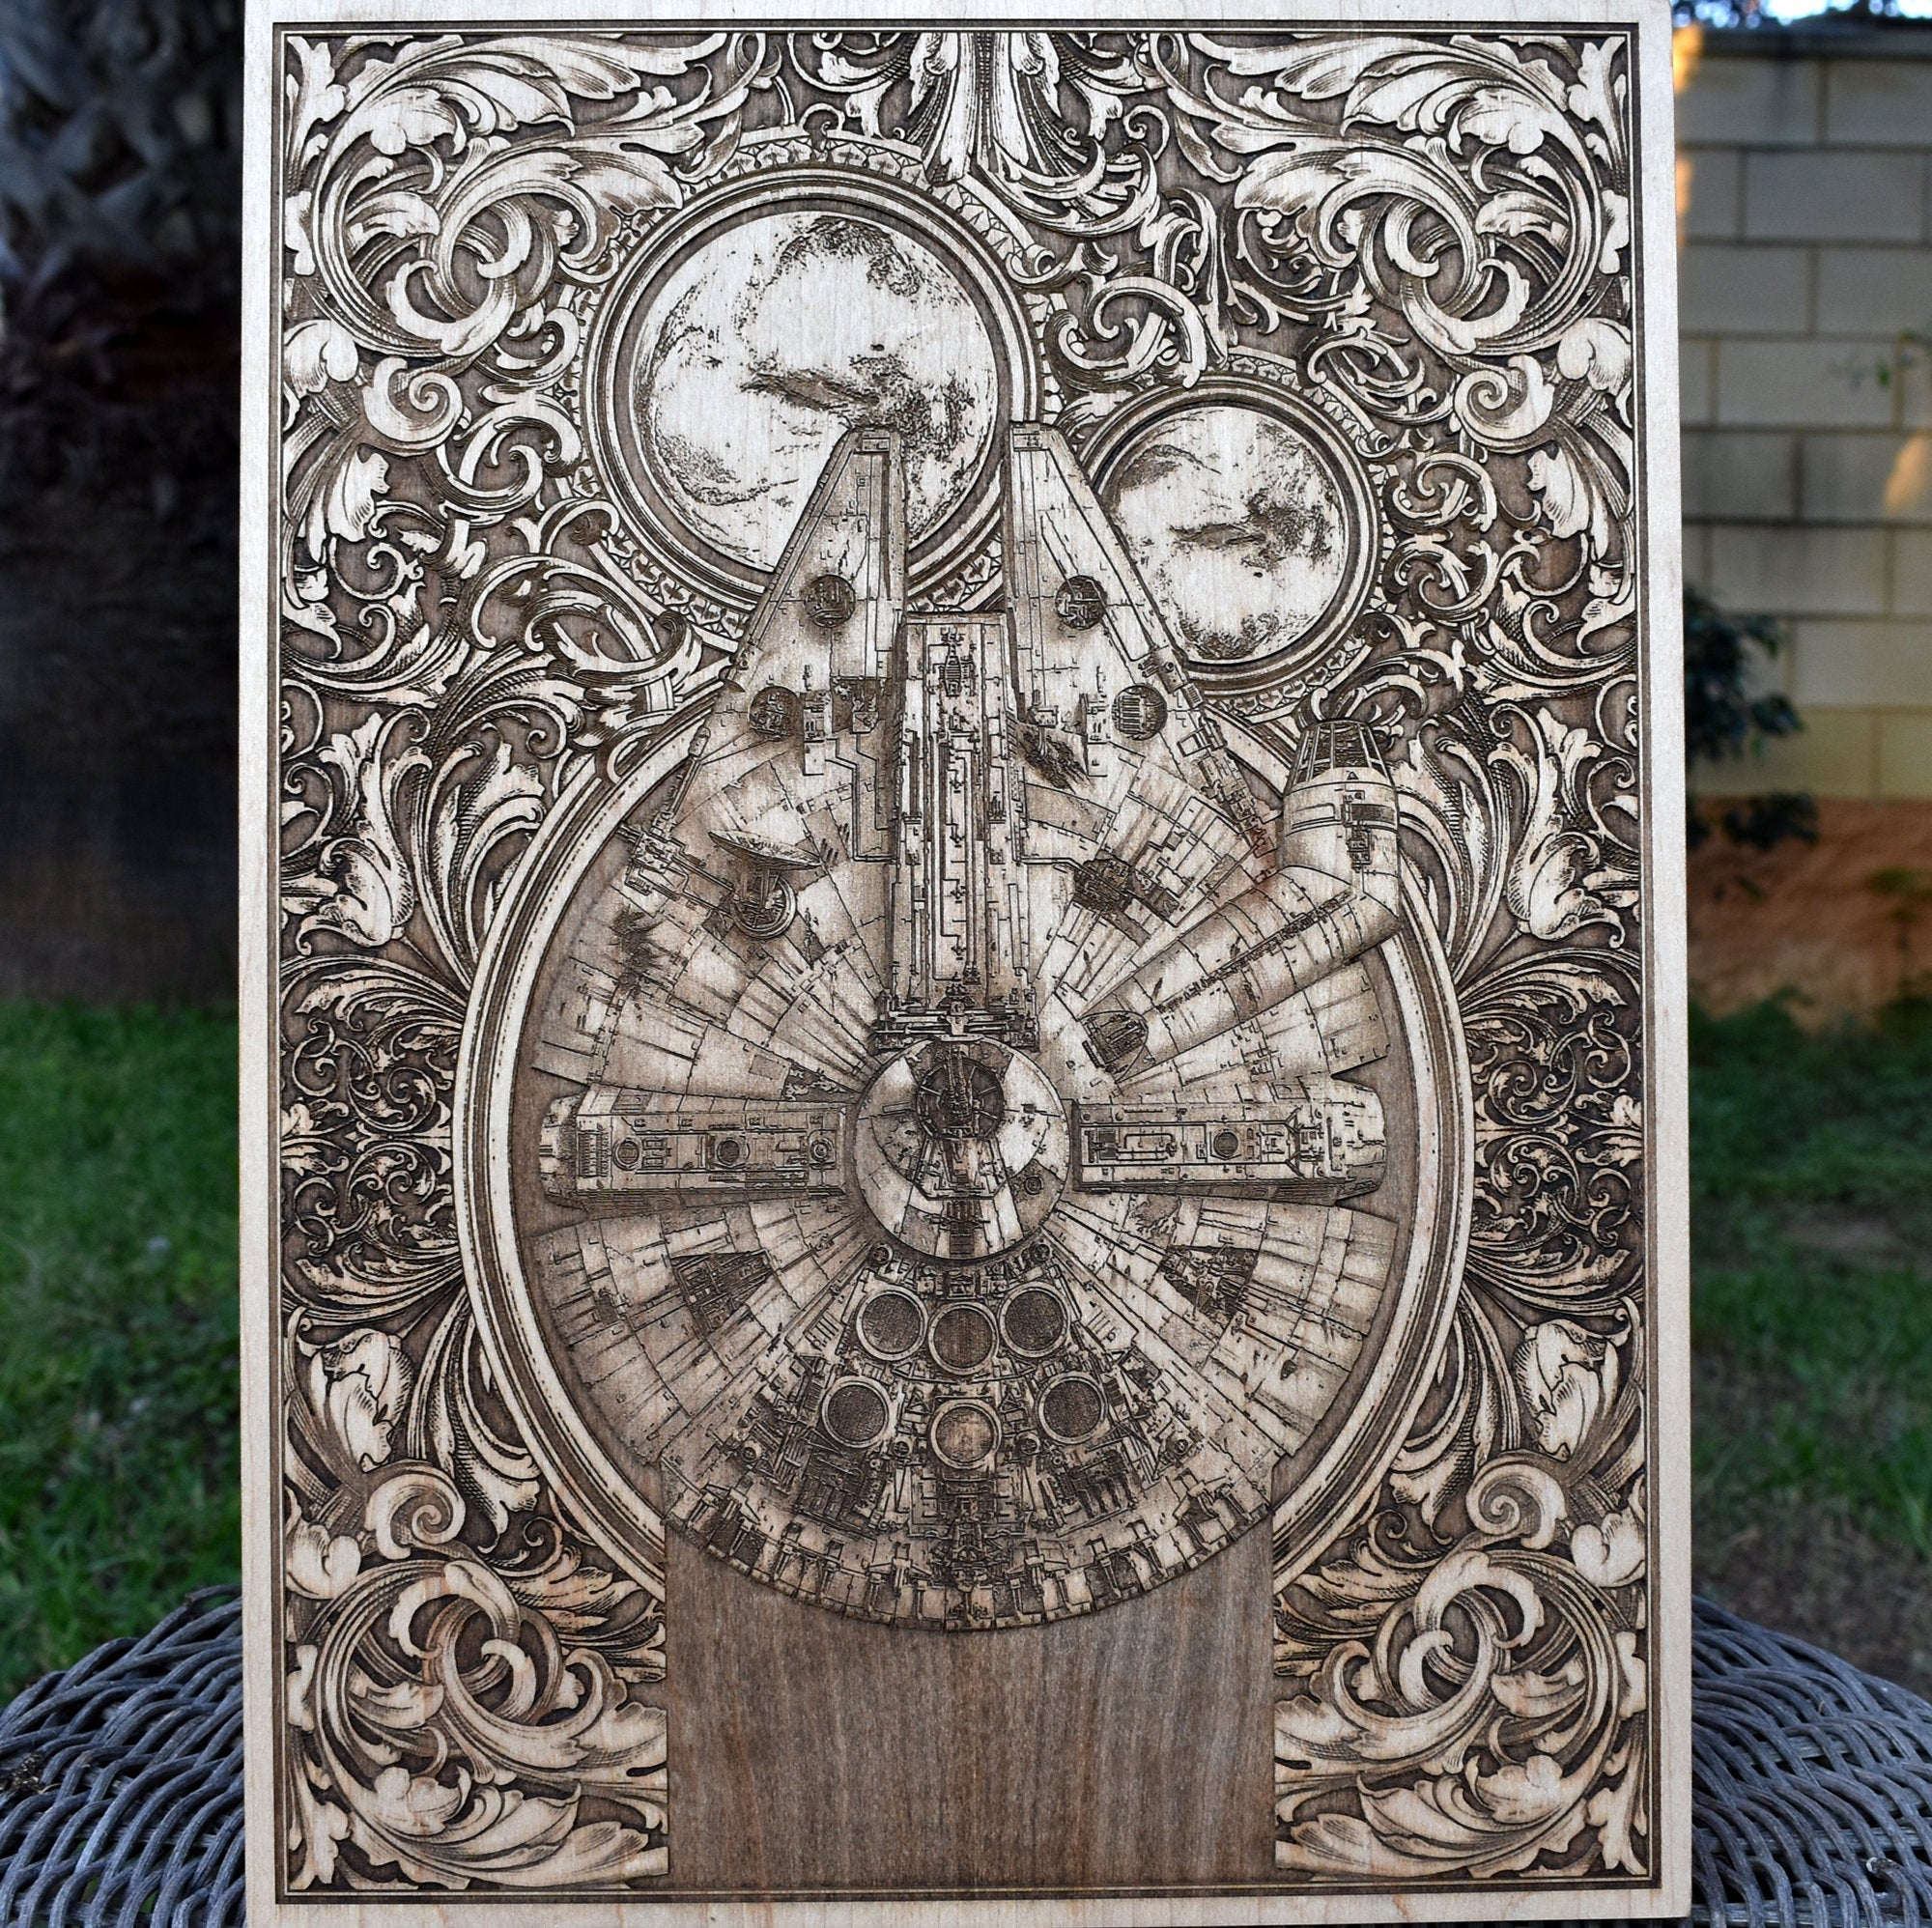 Star Wars Gift, Personalized Geek Gift For Him, Starwars Art Millennium Falcon, Wood Wall Art Laser Engraved - A3 Size